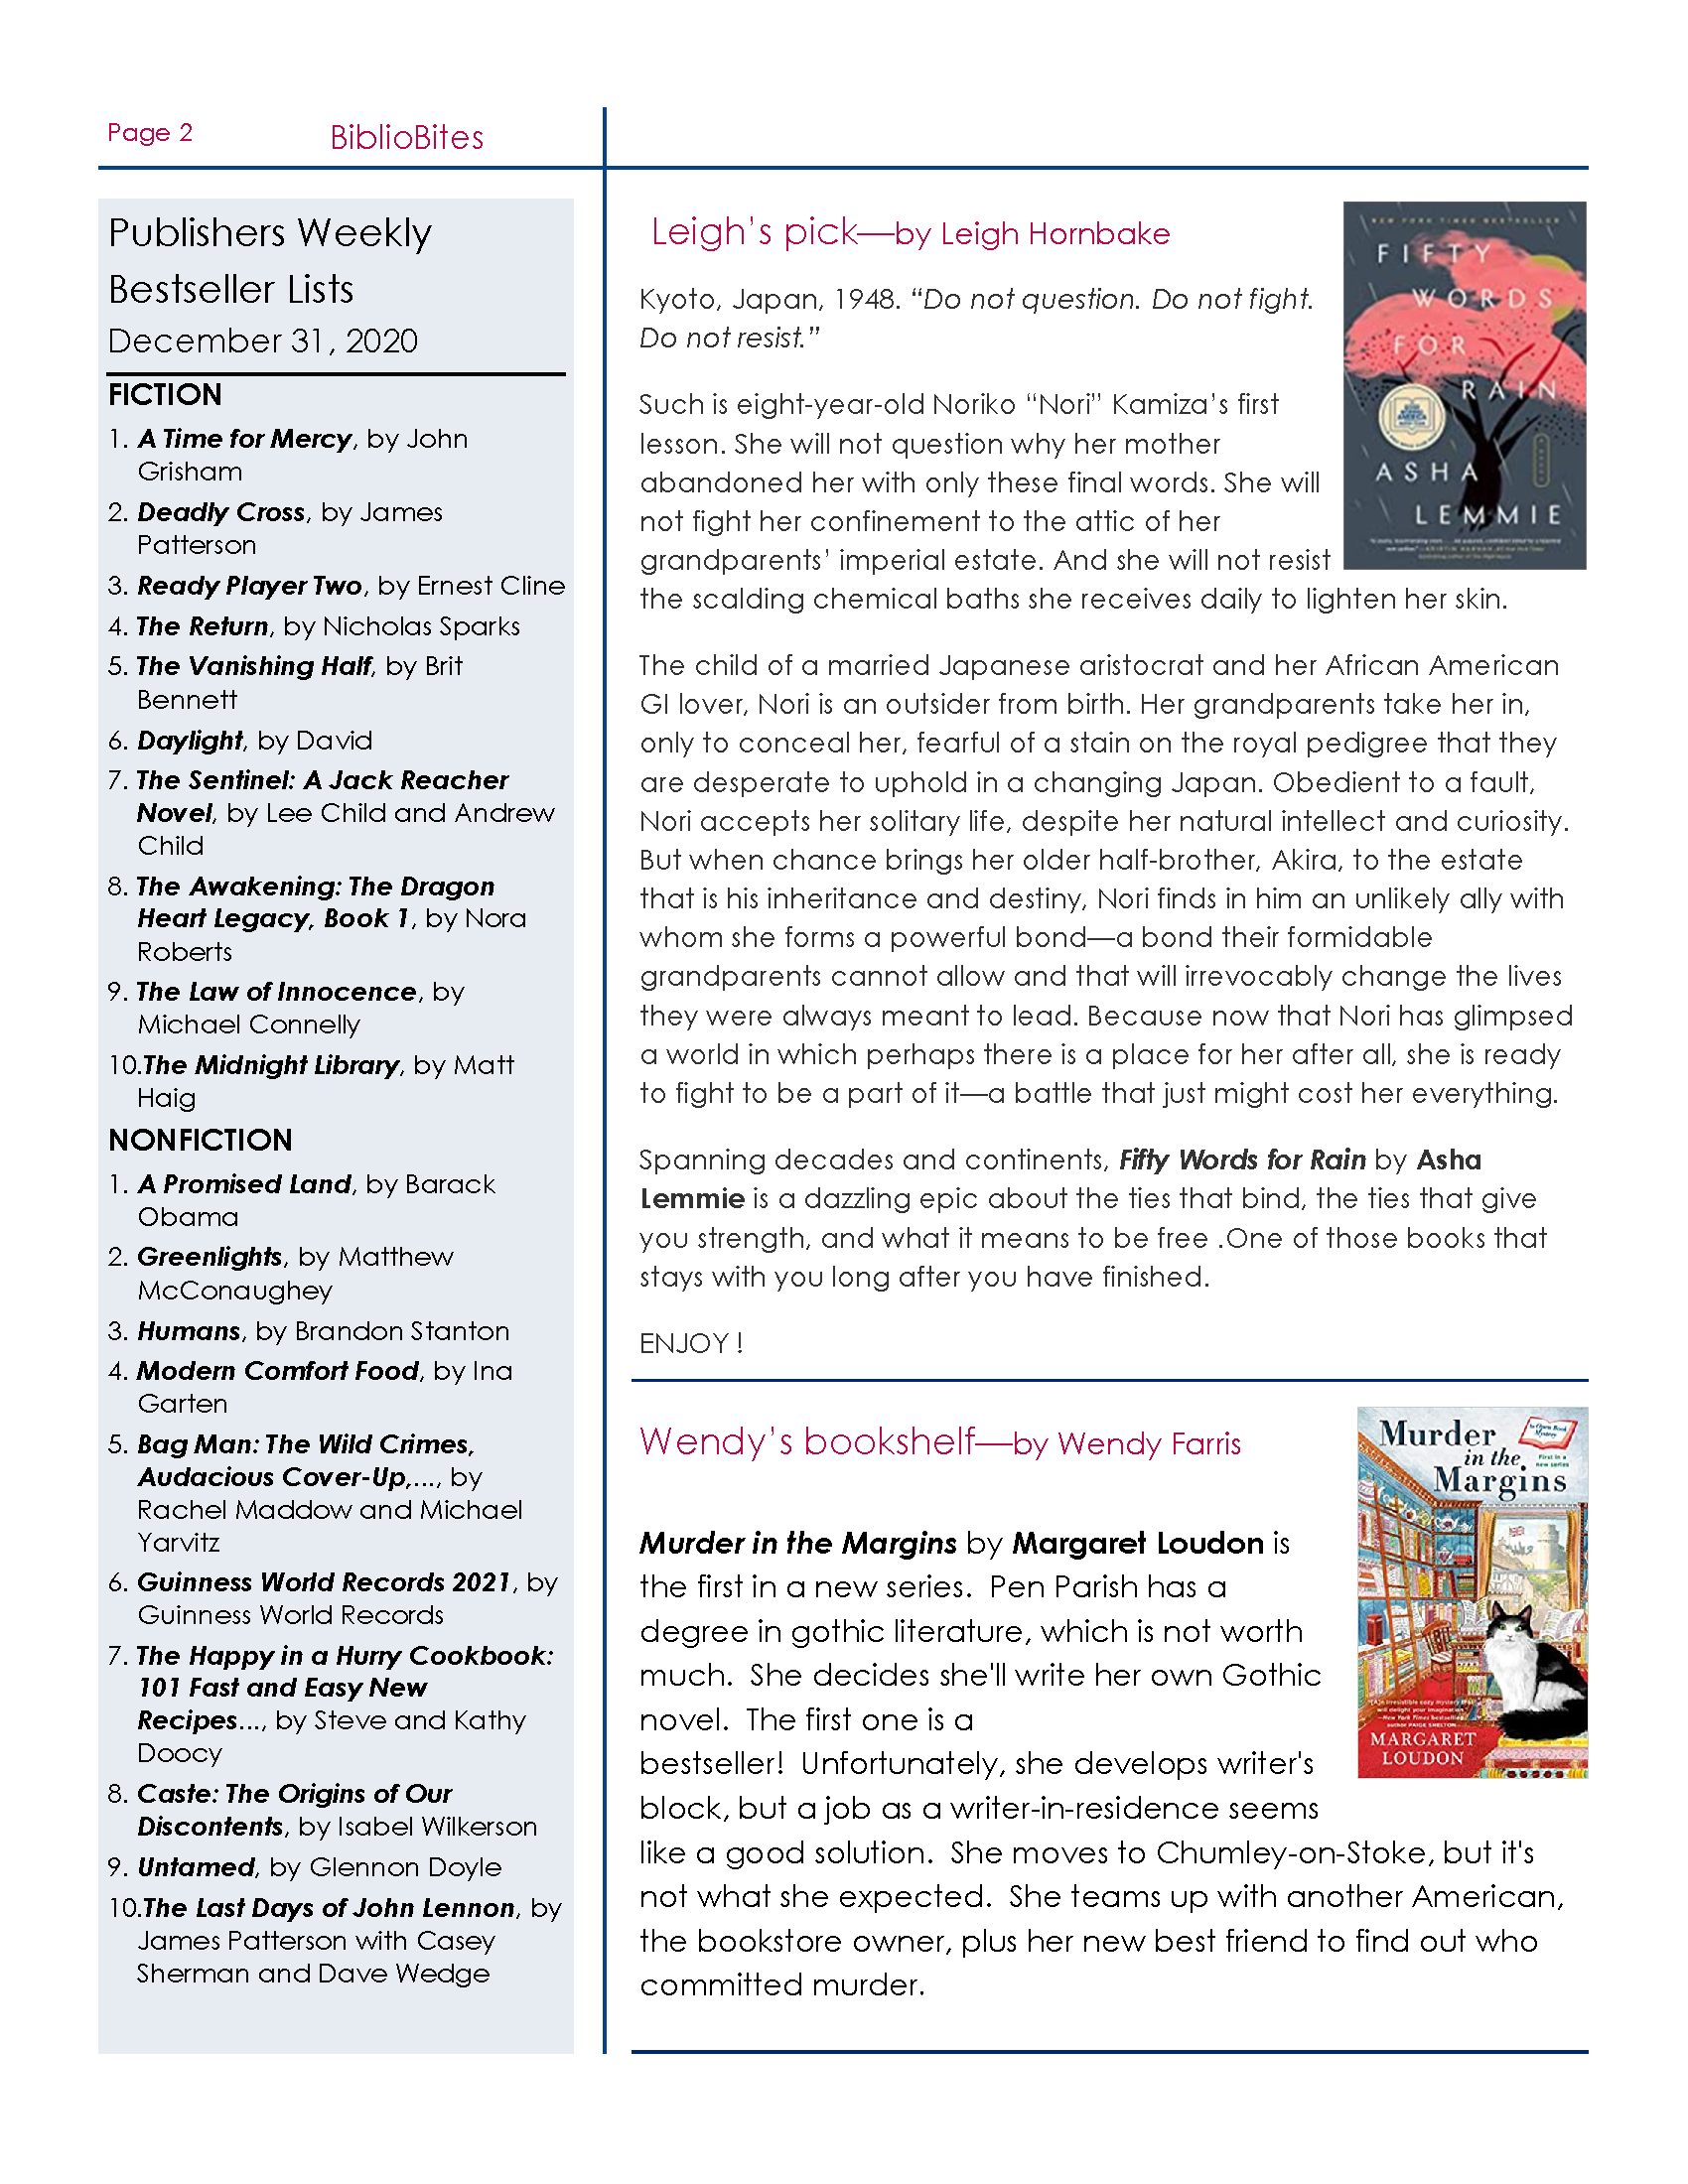 Image Page two of the DeSoto January Newsletter